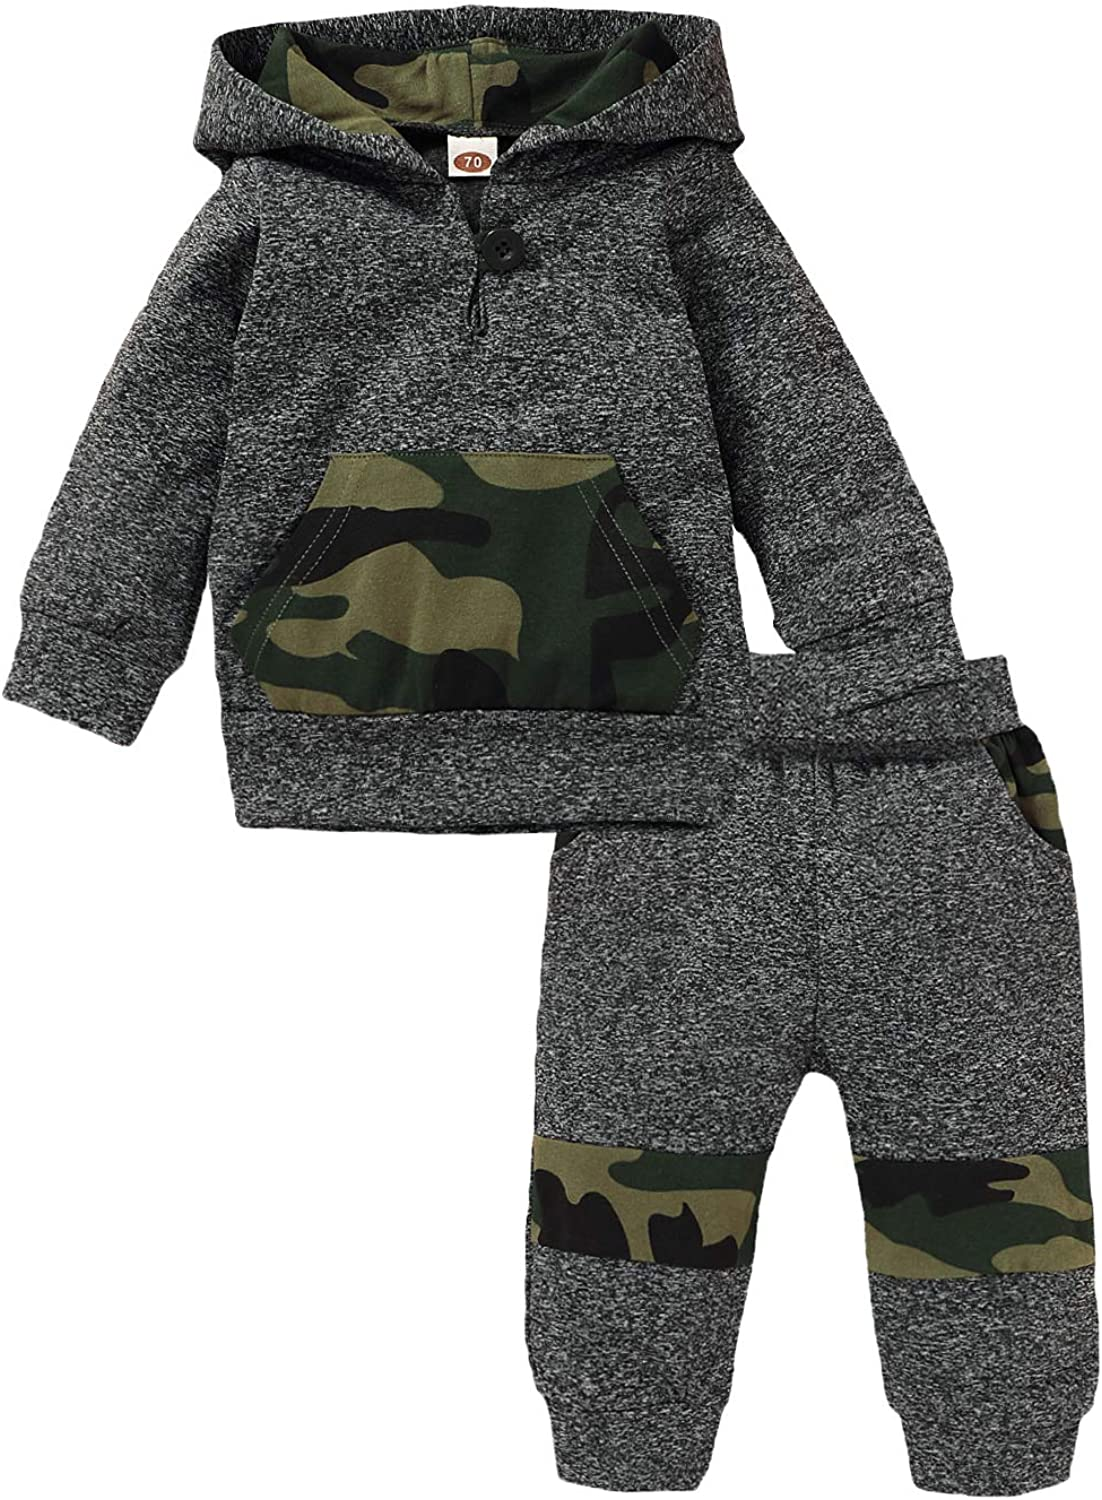 Infant Toddlers Hooded Sweatshirt Tops Trousers Xmas Tracksuit Outfits Winter